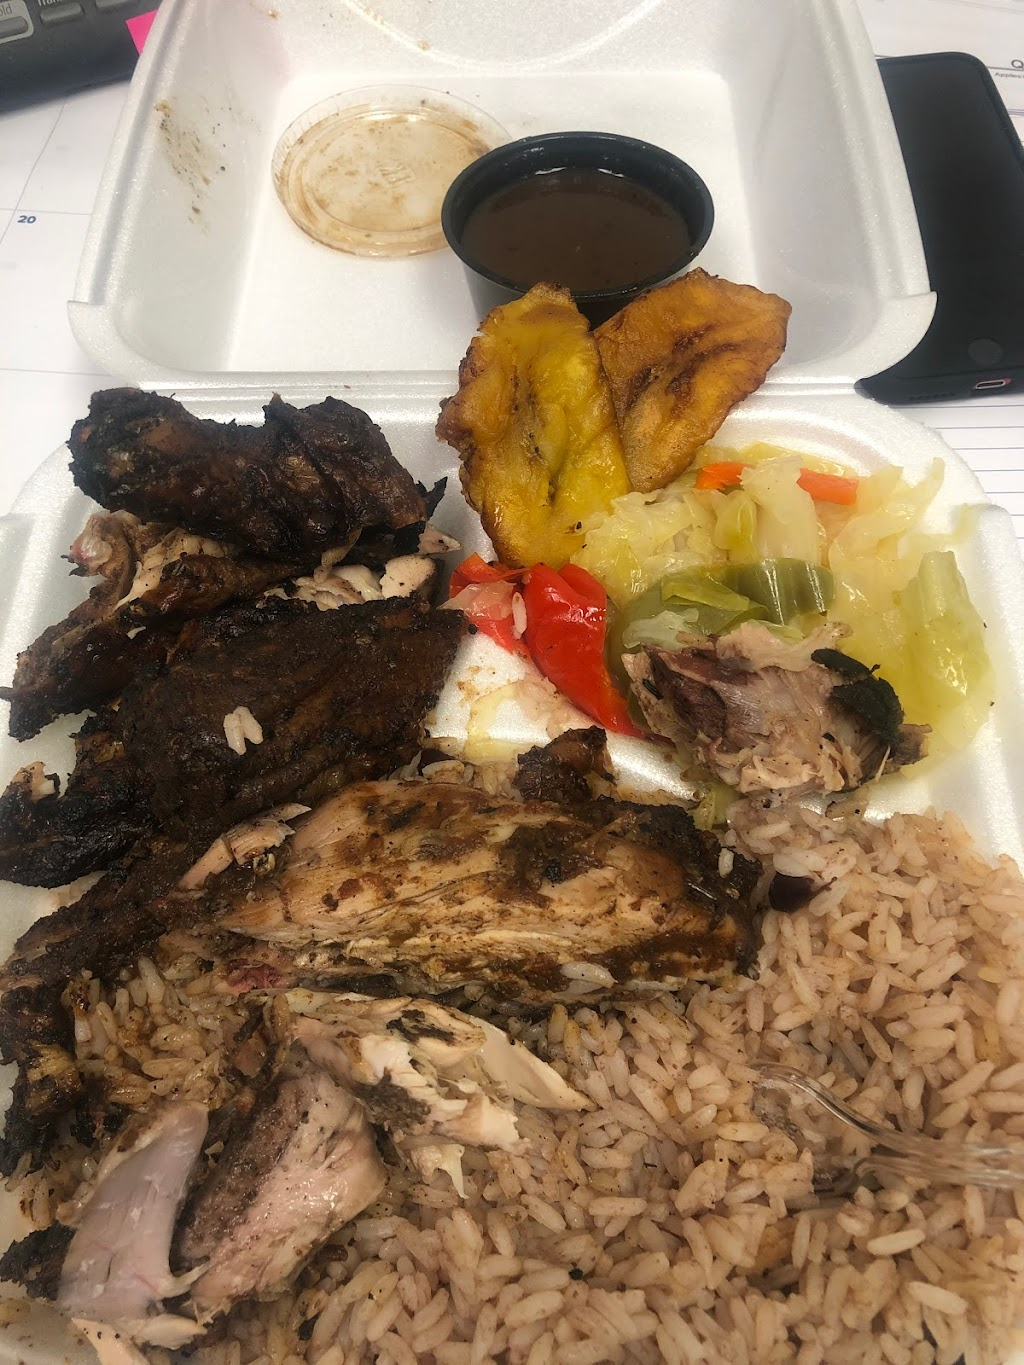 Kings and Queens Jamaican Kitchen   restaurant   1119 S 108th St, West Allis, WI 53214, USA   4147553311 OR +1 414-755-3311